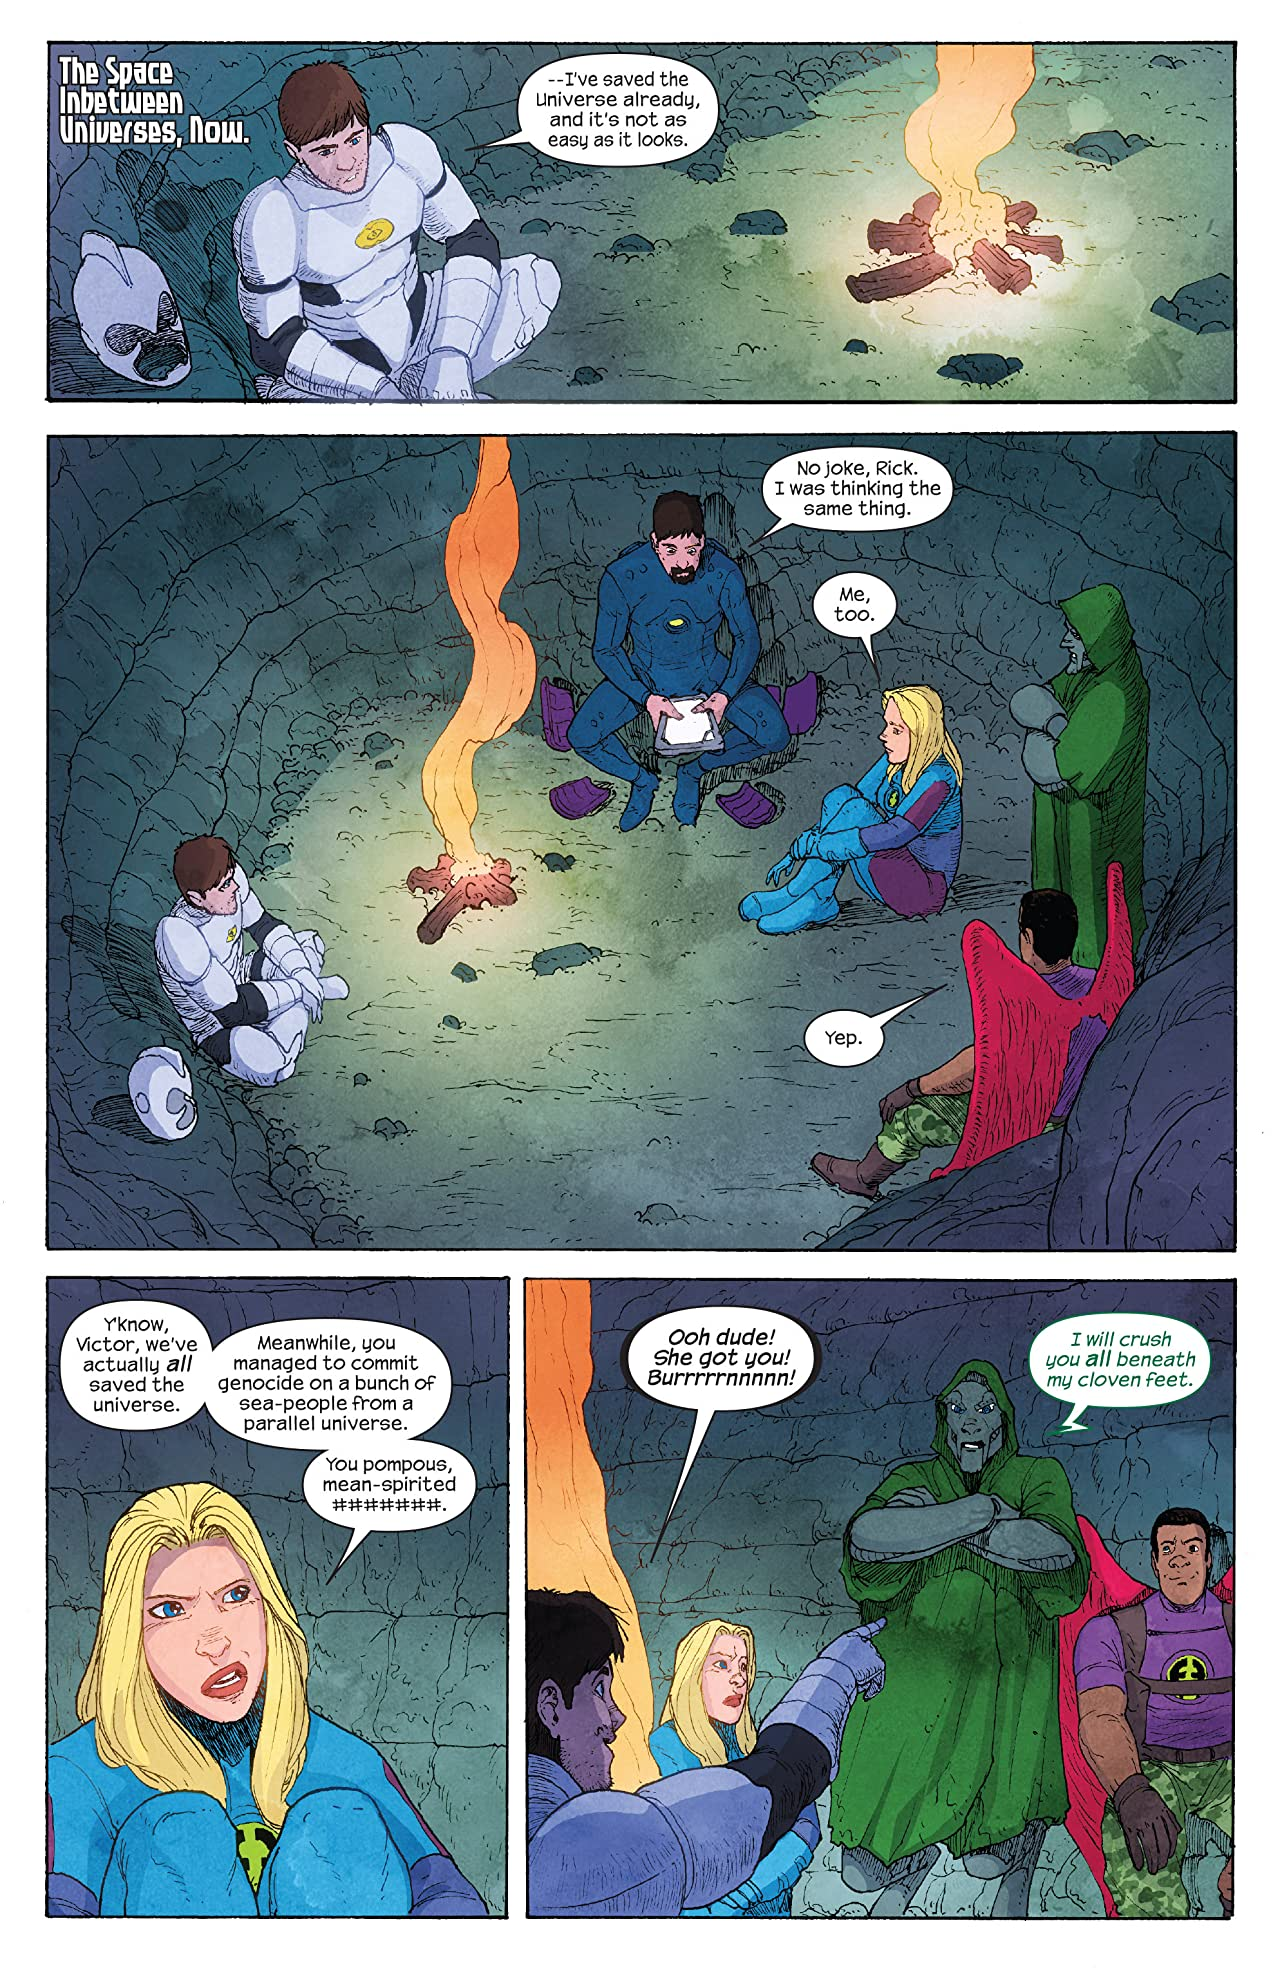 Ultimate FF (2014) #4